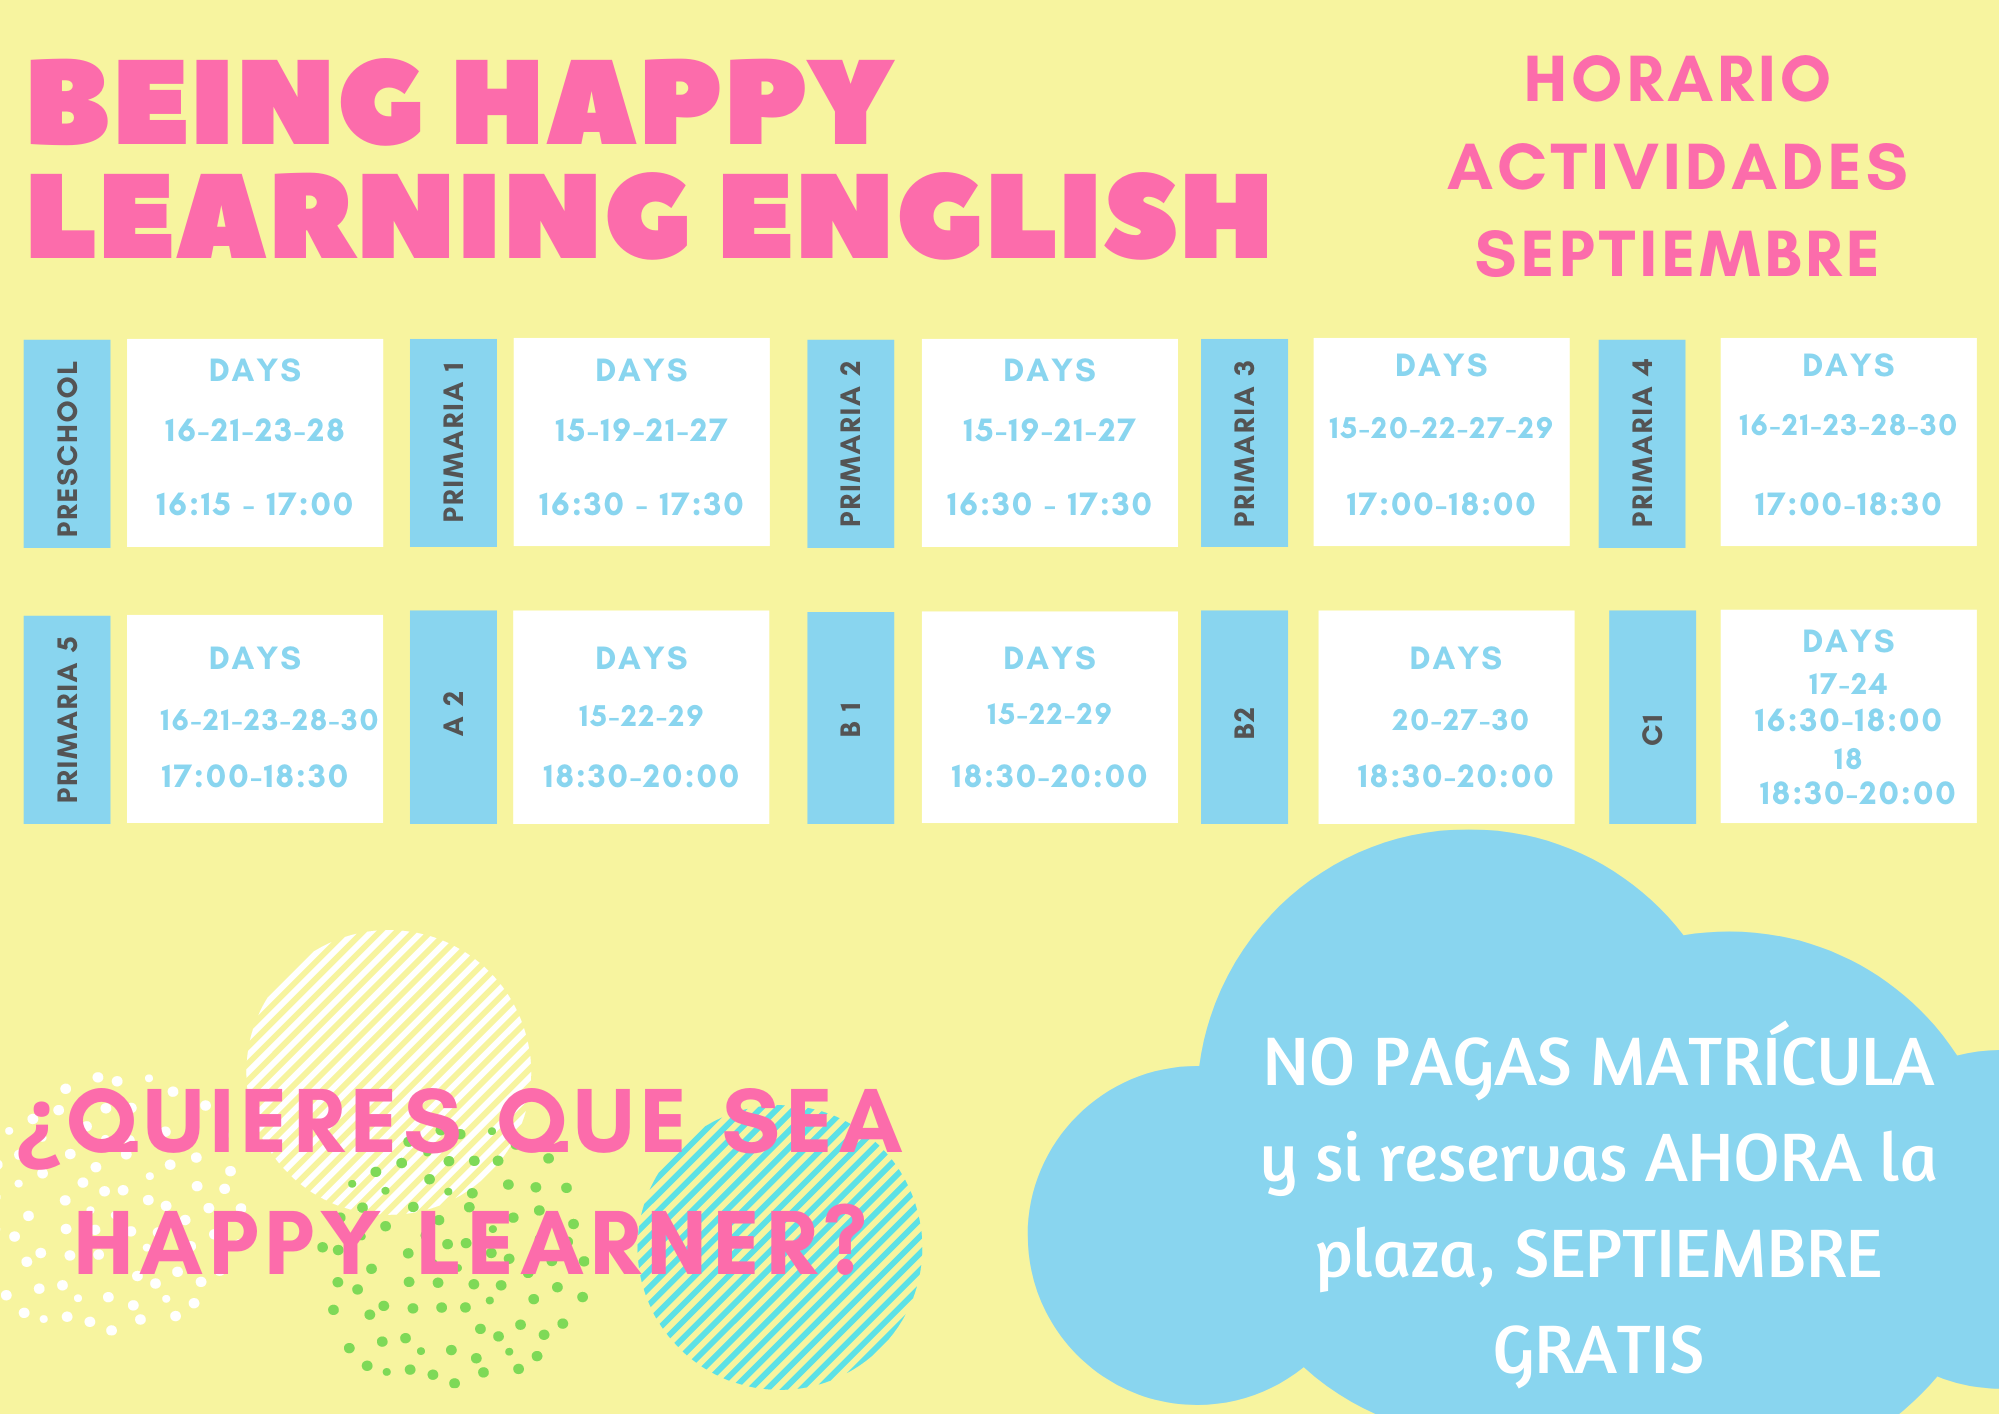 Being Happy Learning English